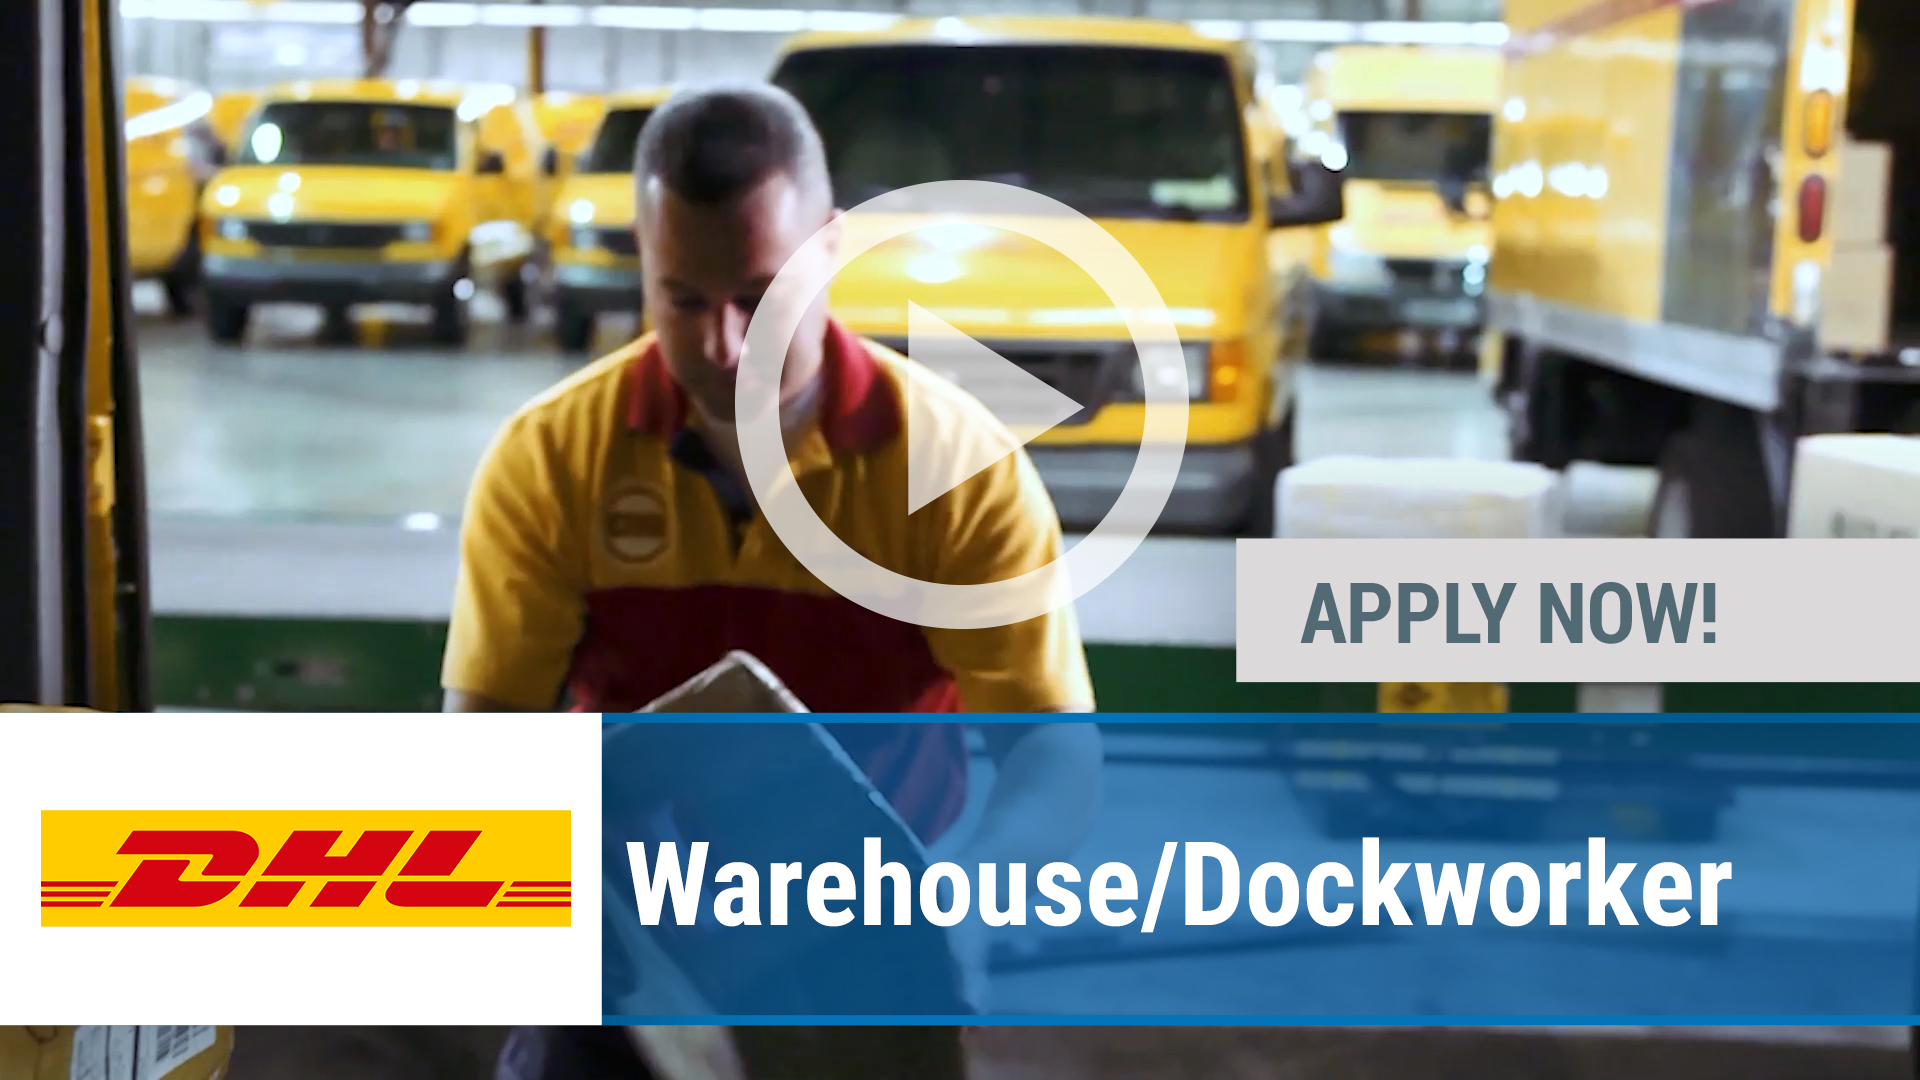 Watch our careers video for available job opening Warehouse_Dockworker in Boston, MA, USA